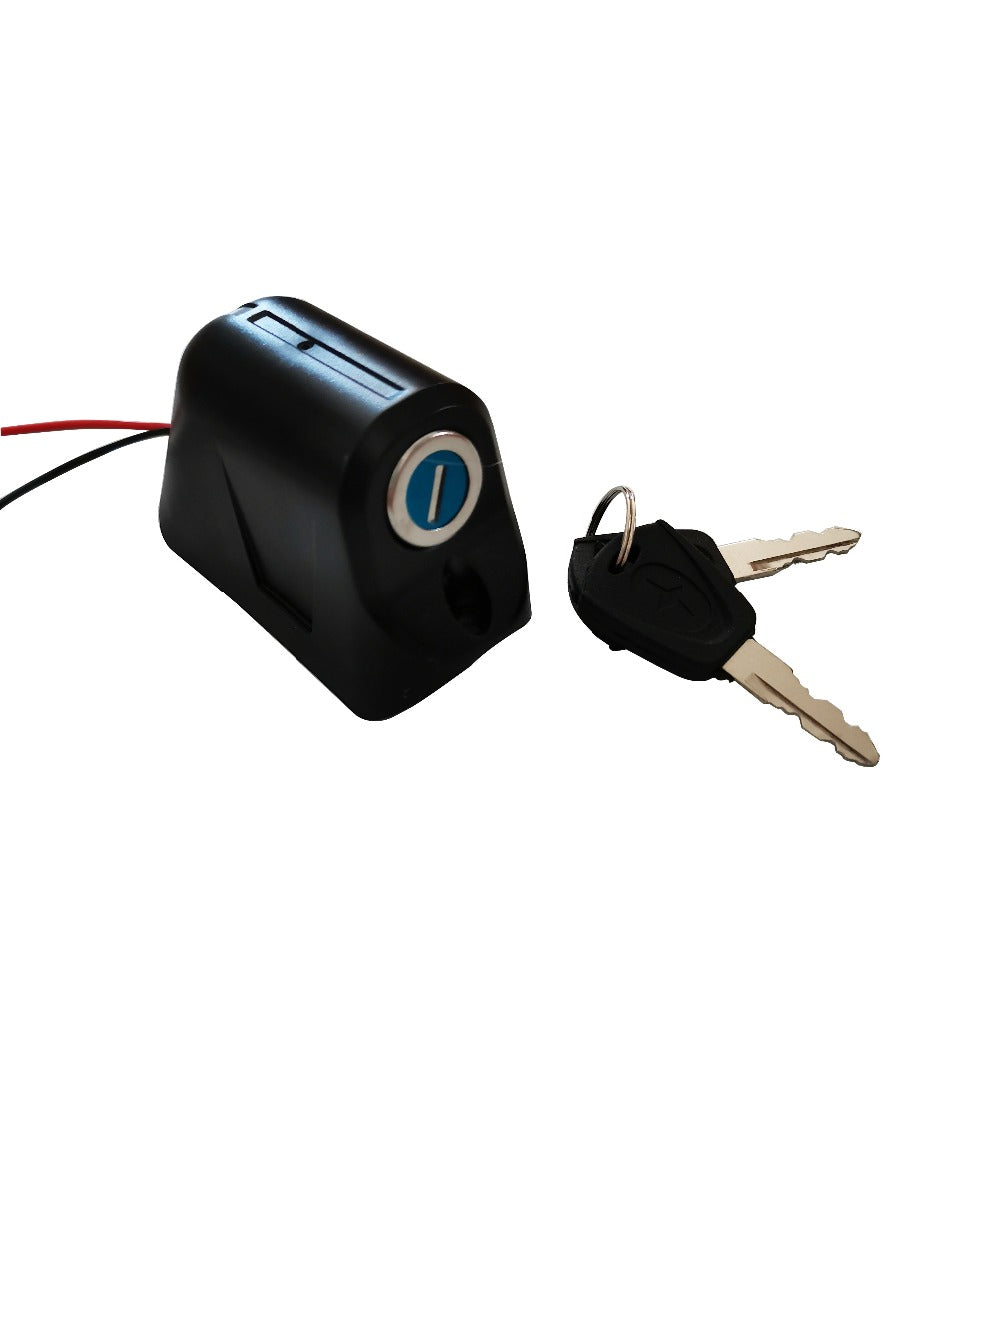 MERCANE WideWheel 2020 PRO Replacement Keylock